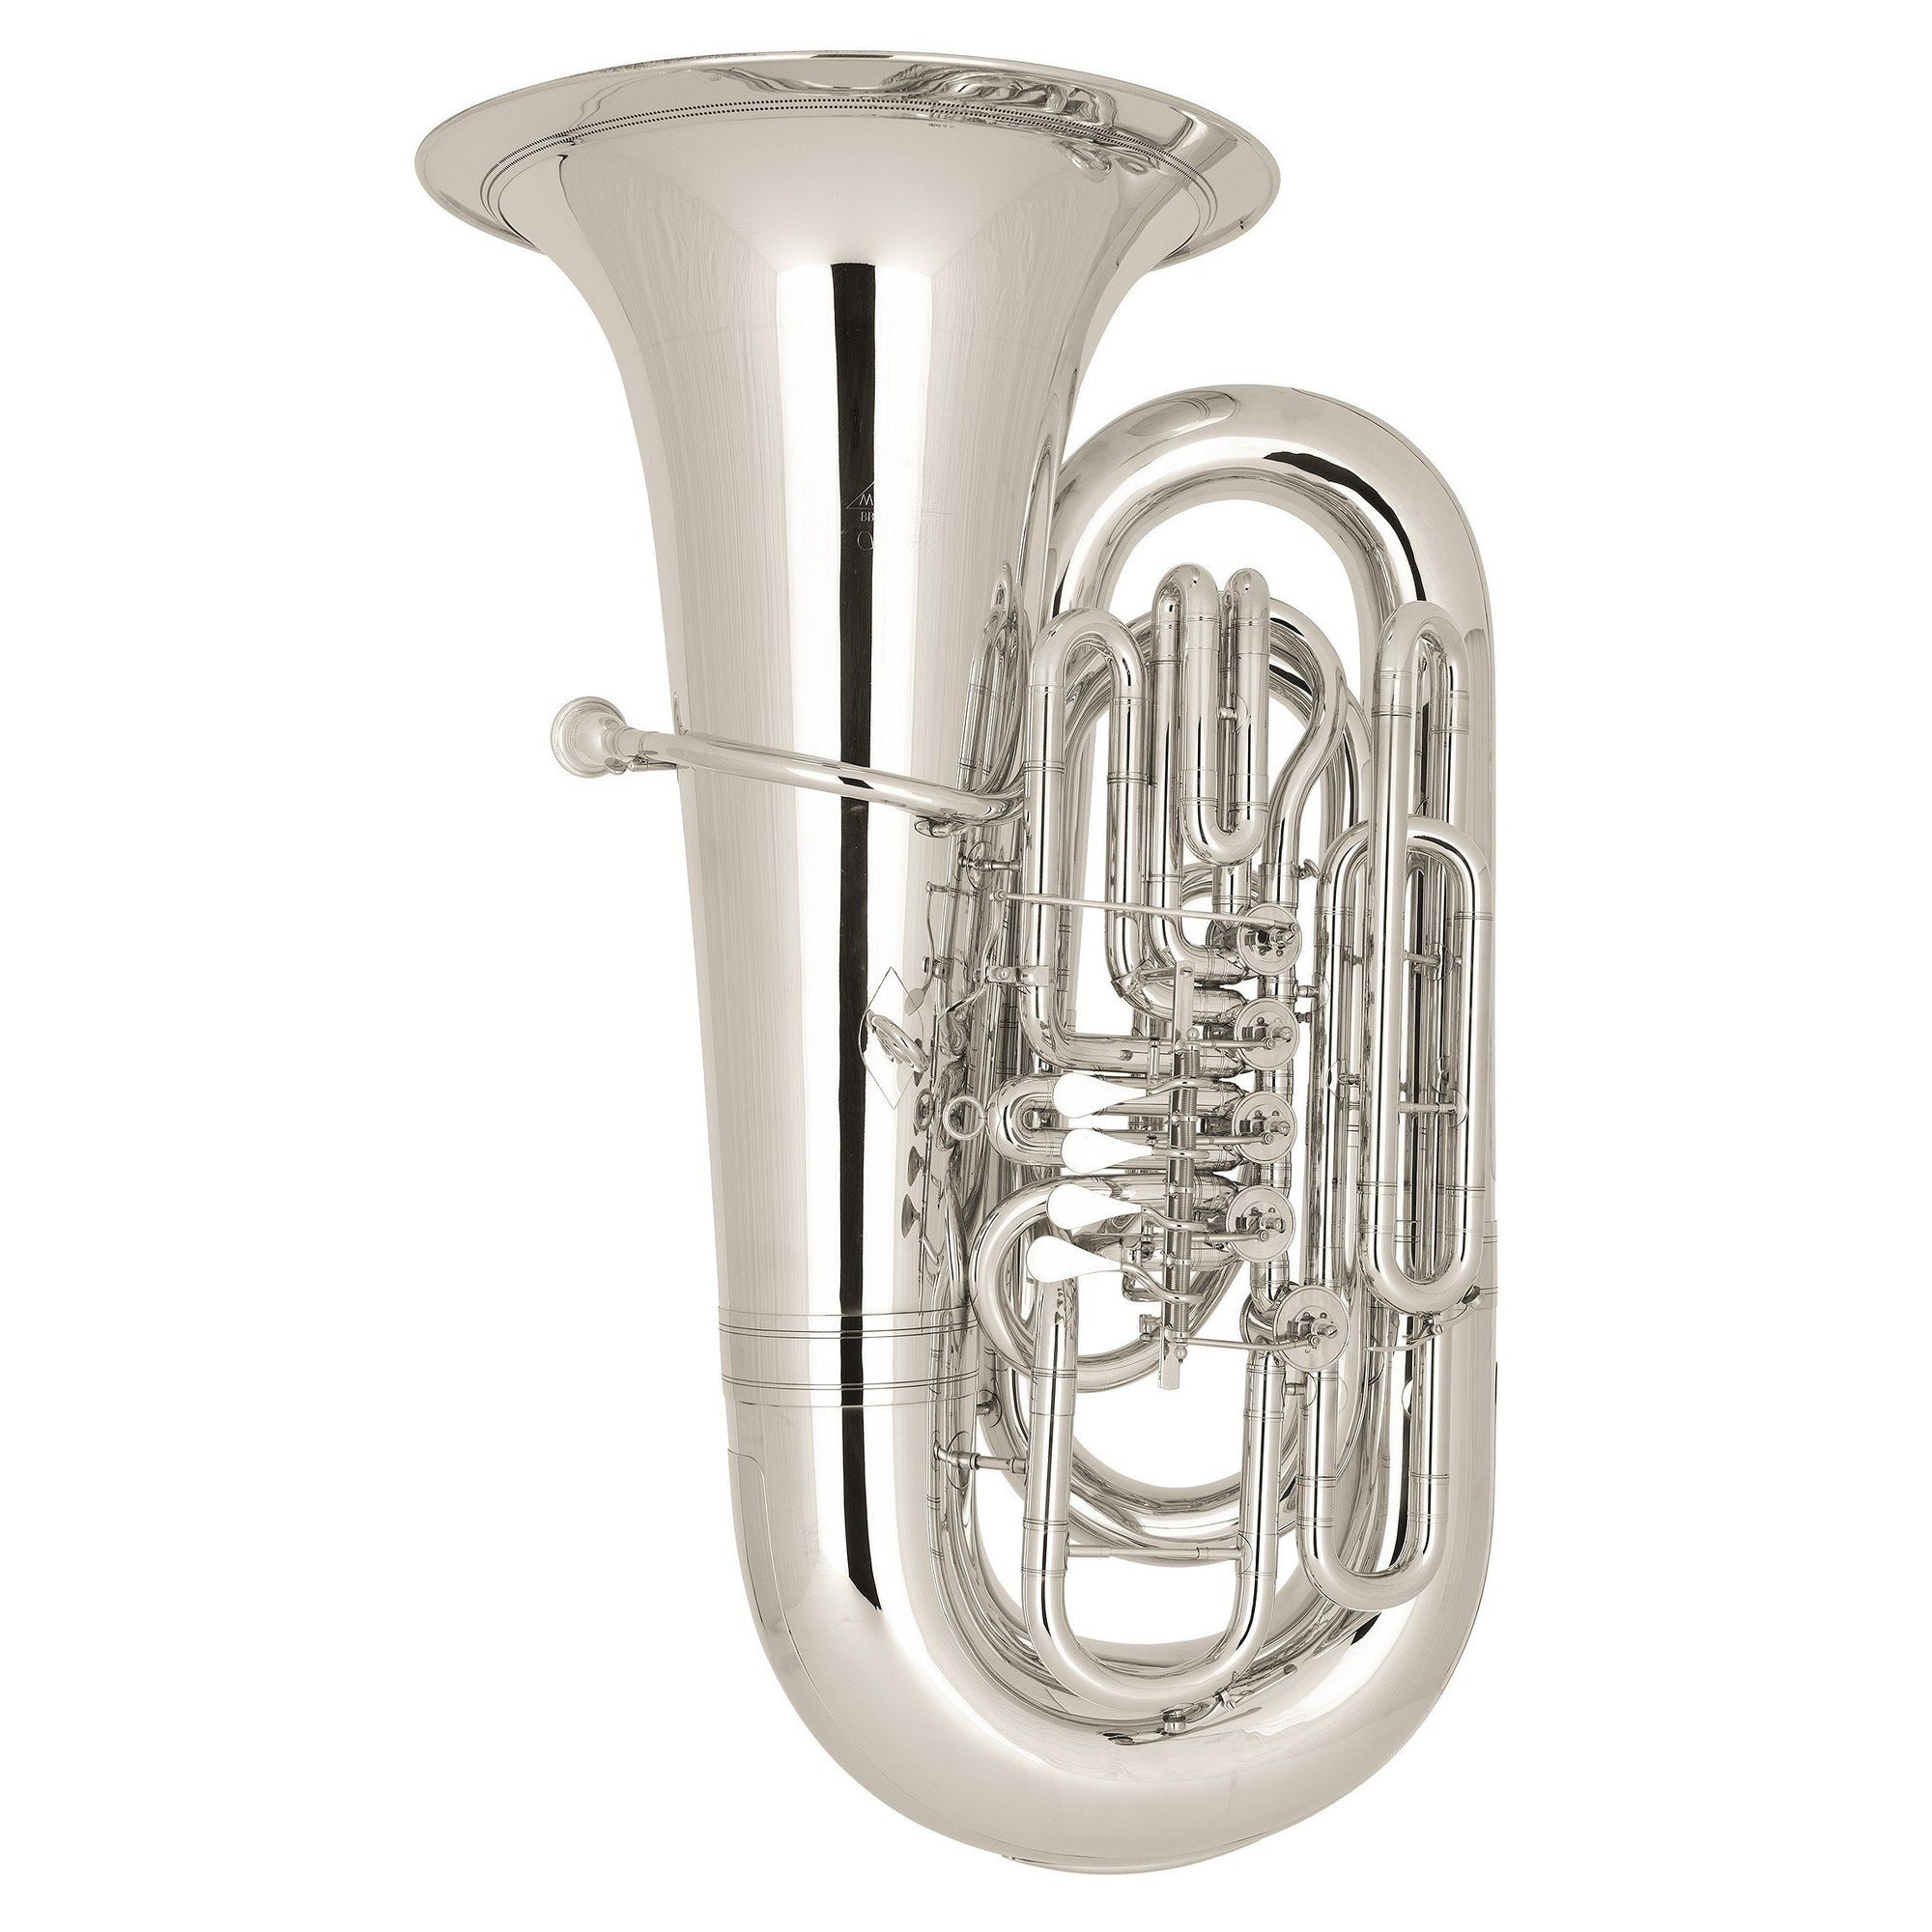 Miraphone - Model 98 Siegfried BBb Tubas-Tuba-Miraphone-Music Elements